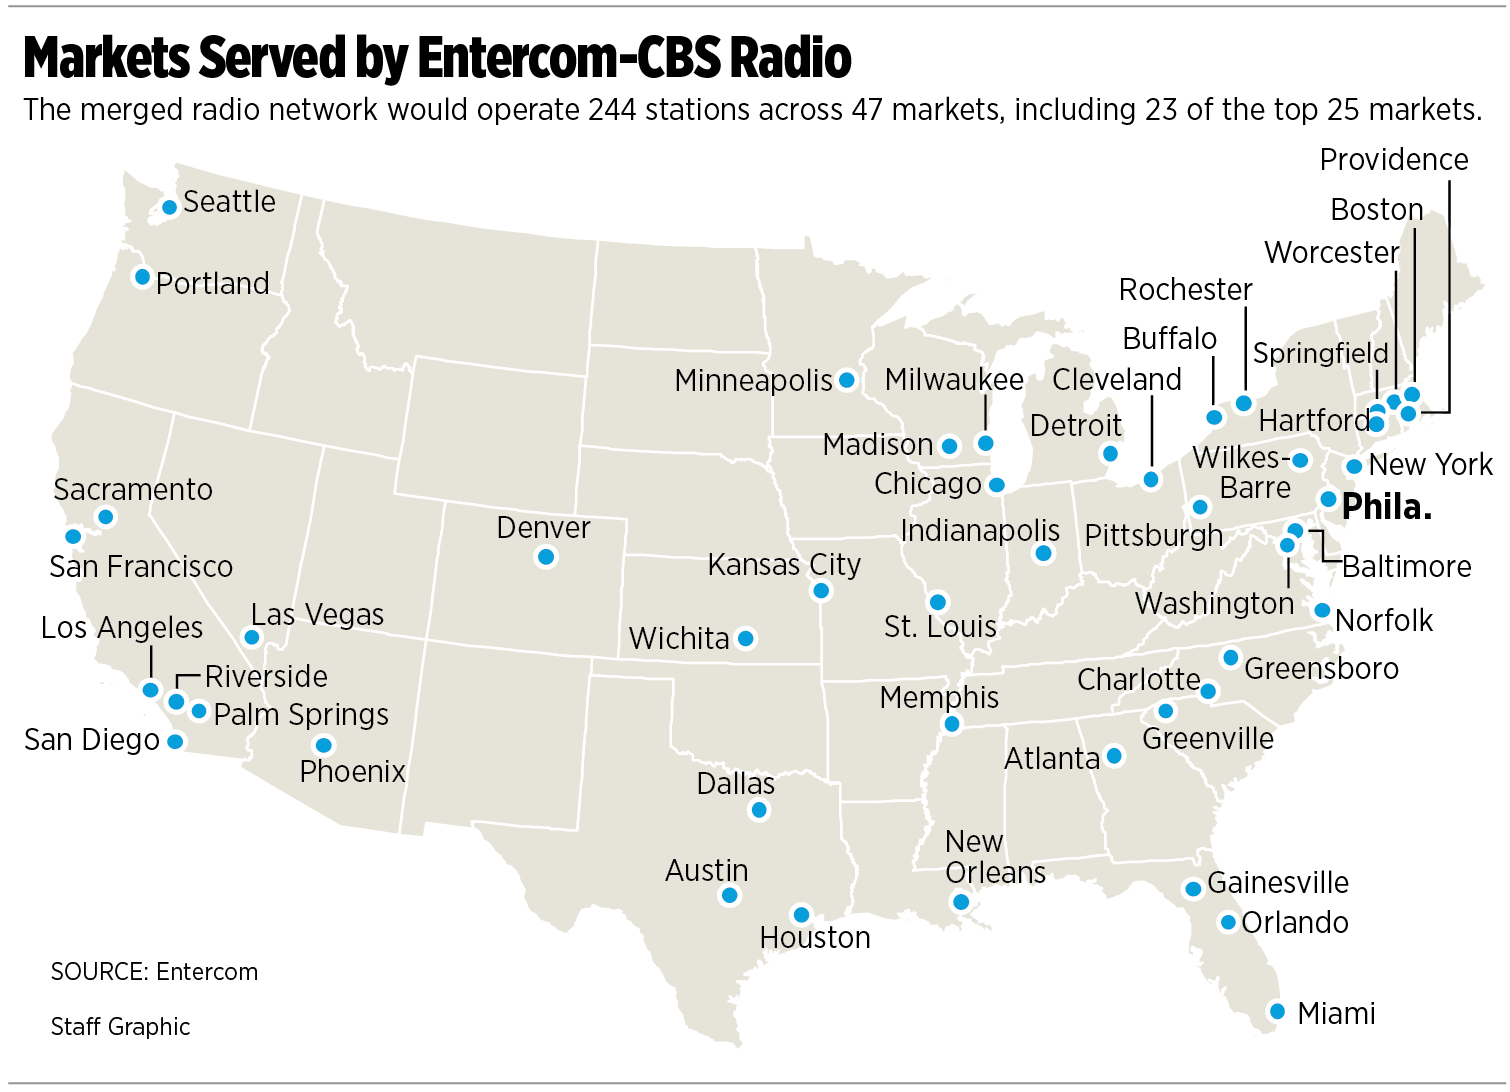 among other prties entercom cbs radio will control top sports talk radio stations in philadelphia wip new york wfan boston weei and chicago